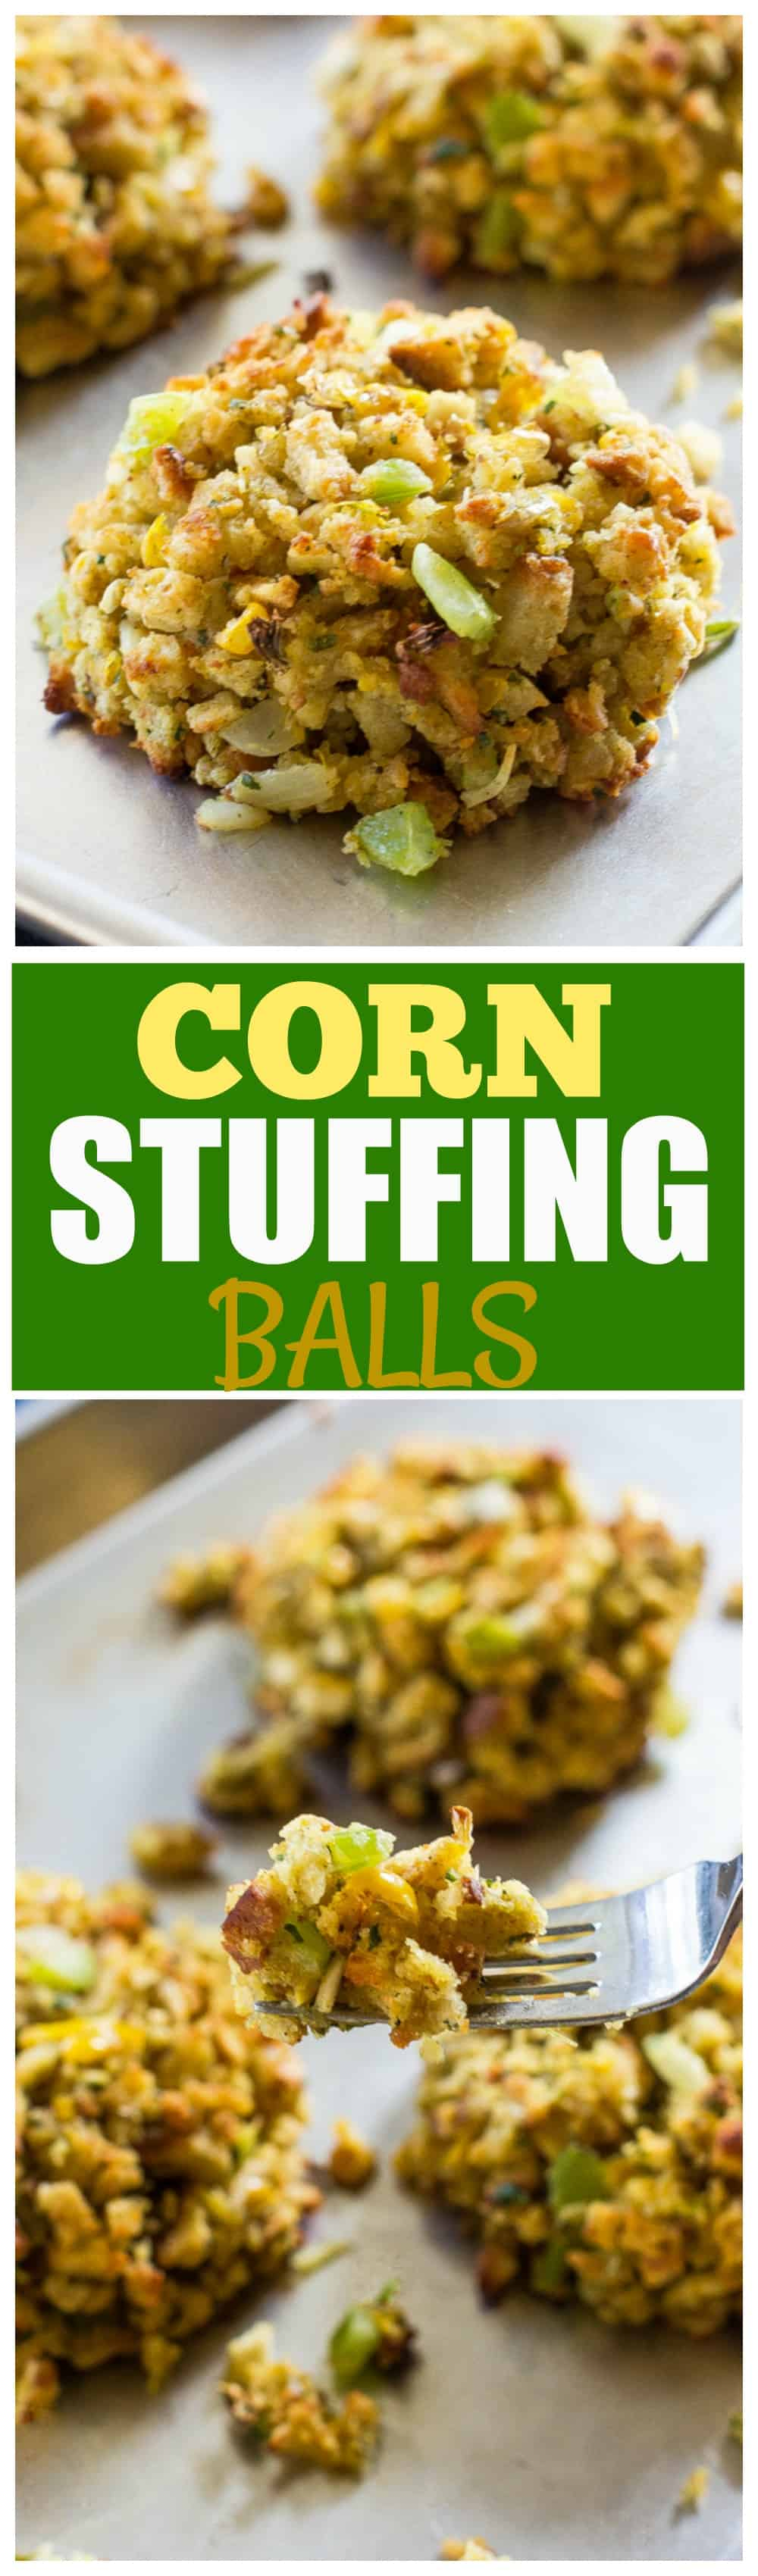 Imagine stuffing in the form of an individually portioned ball. That's what these Corn Stuffing Balls are!